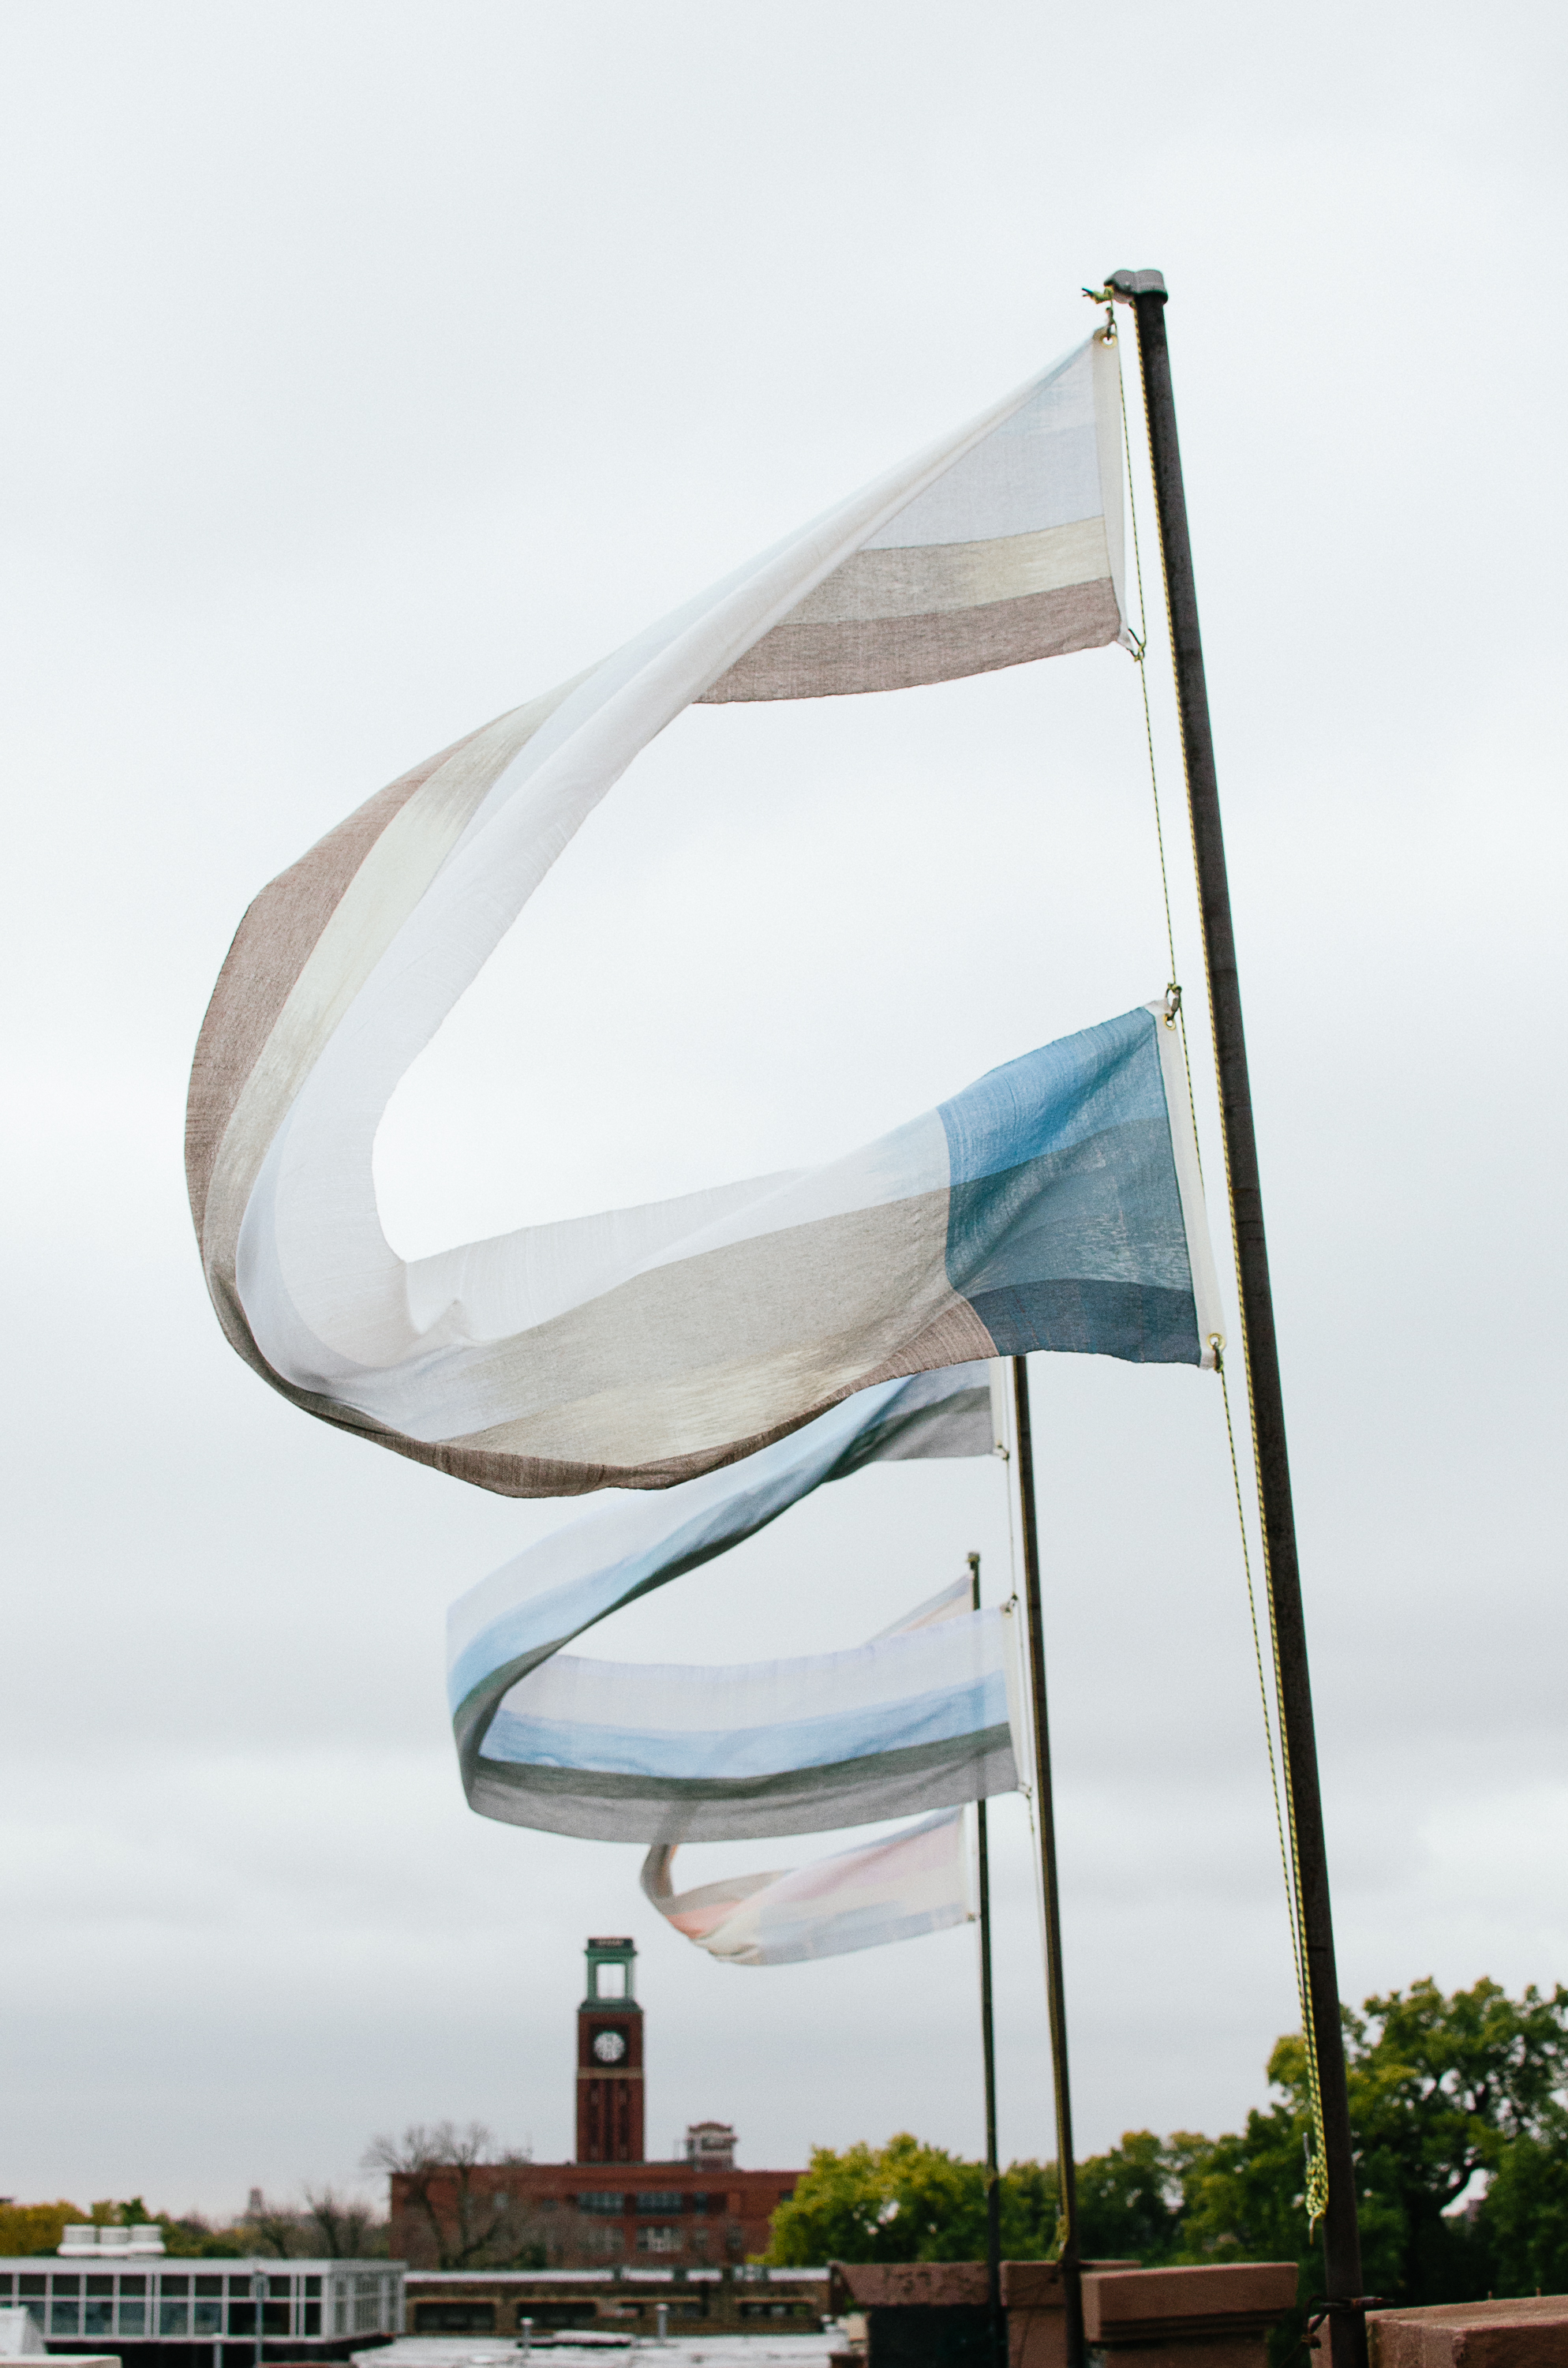 Banner-scape No. 5-8: Acadia, Cadillac, Oberg & Aran. Hand-woven, hand-dyed cloth, 2013.